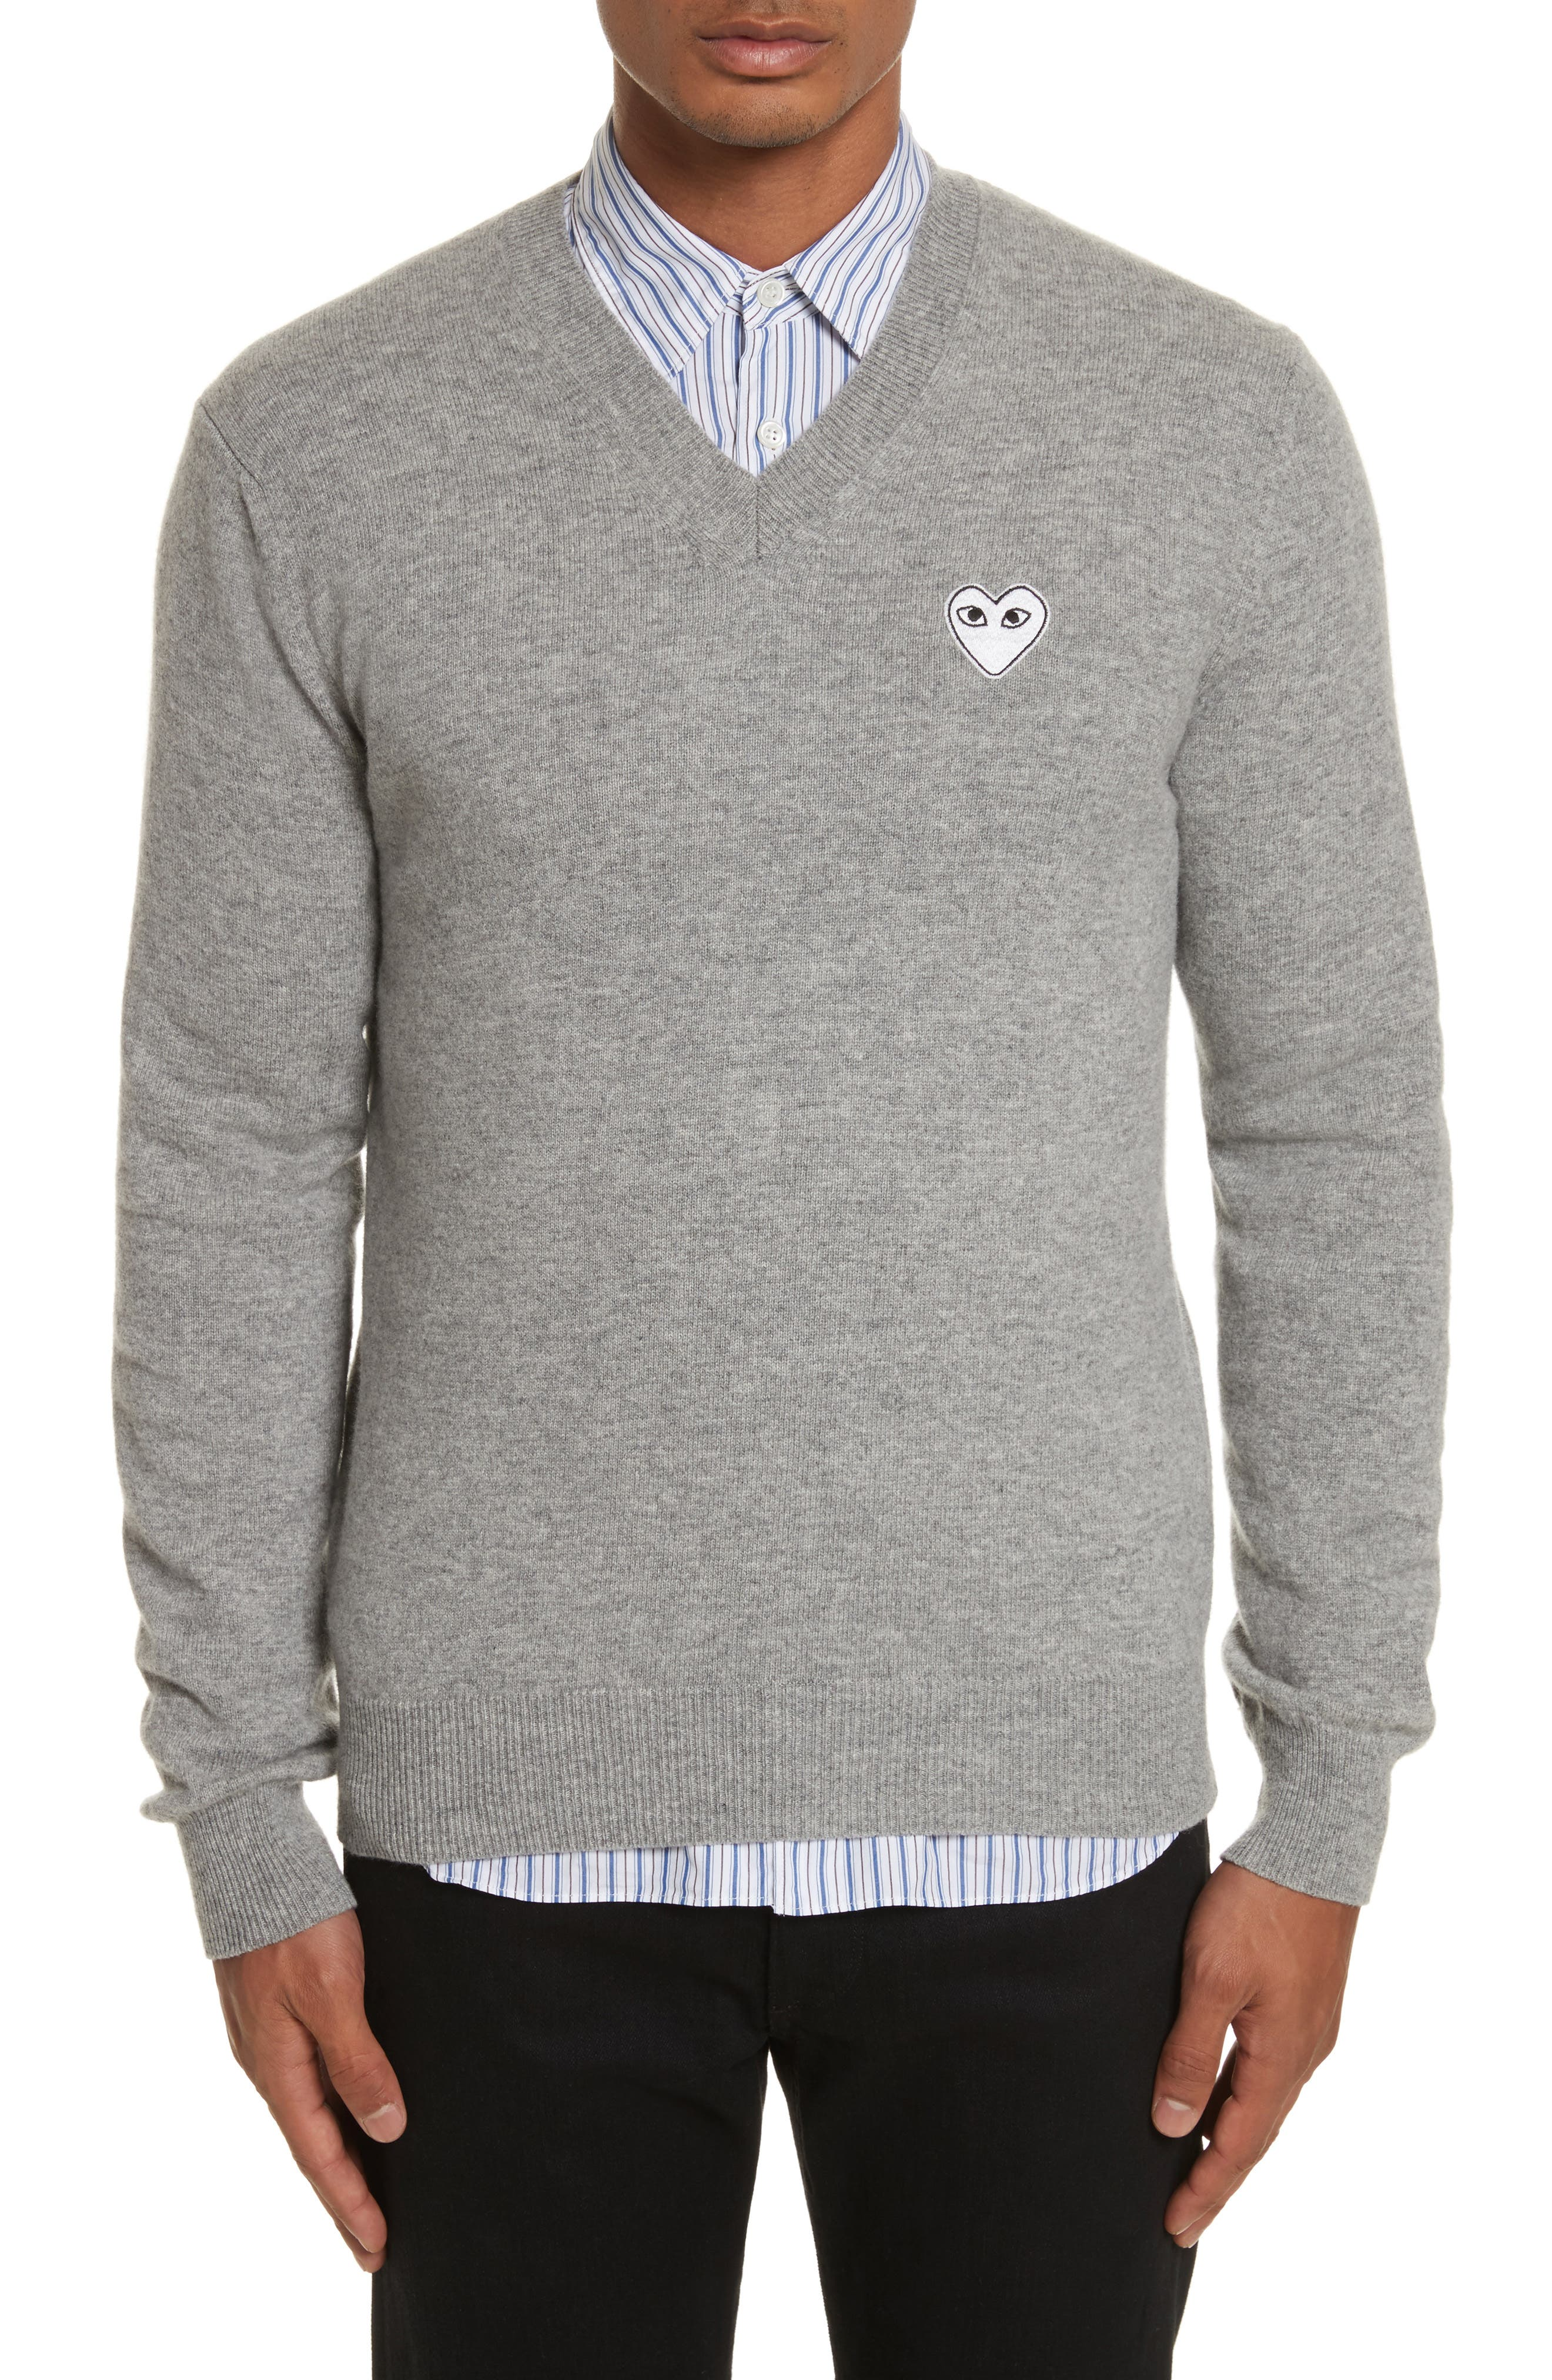 White Heart Wool V-Neck Sweater,                             Main thumbnail 1, color,                             LIGHT GREY